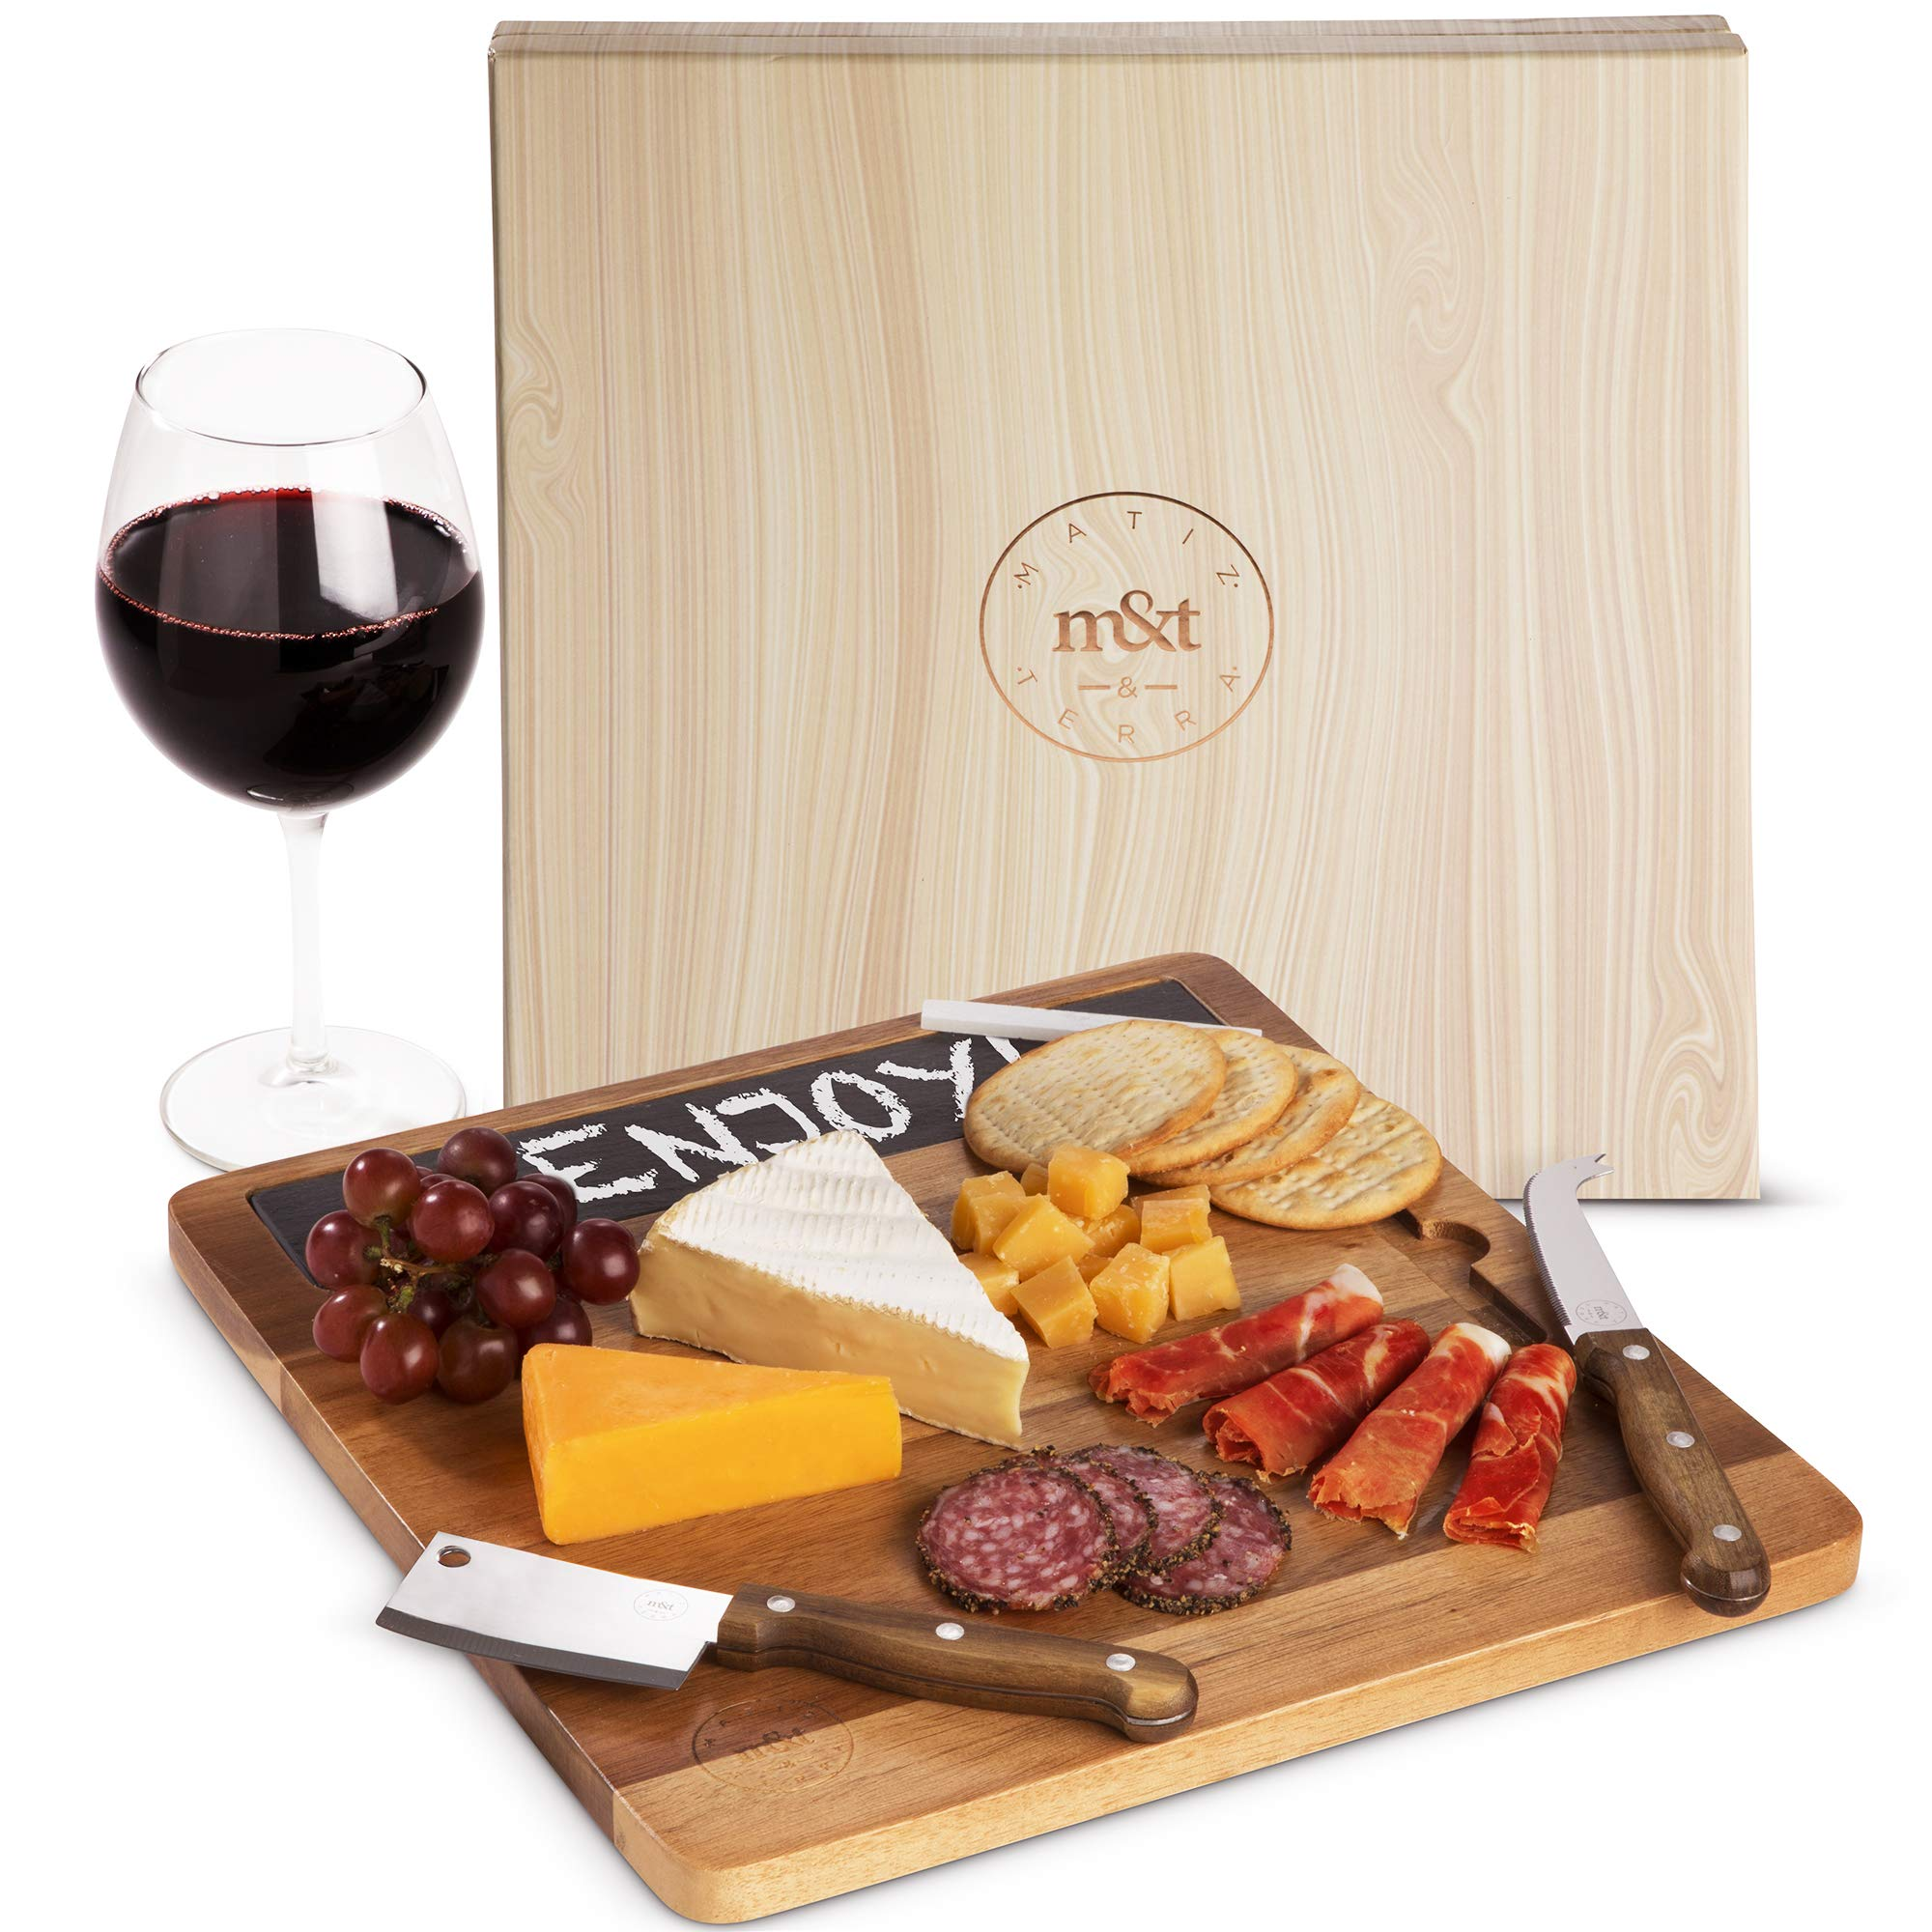 Premium Acacia Wood Charcuterie Cheese Board Server Set with Pronged, Cleaver Knives, Slate and 2 Pencils in Elegant Gift Box - Meat, Cheese, Crackers, Bread Serving Platter - Gift Any Occasion